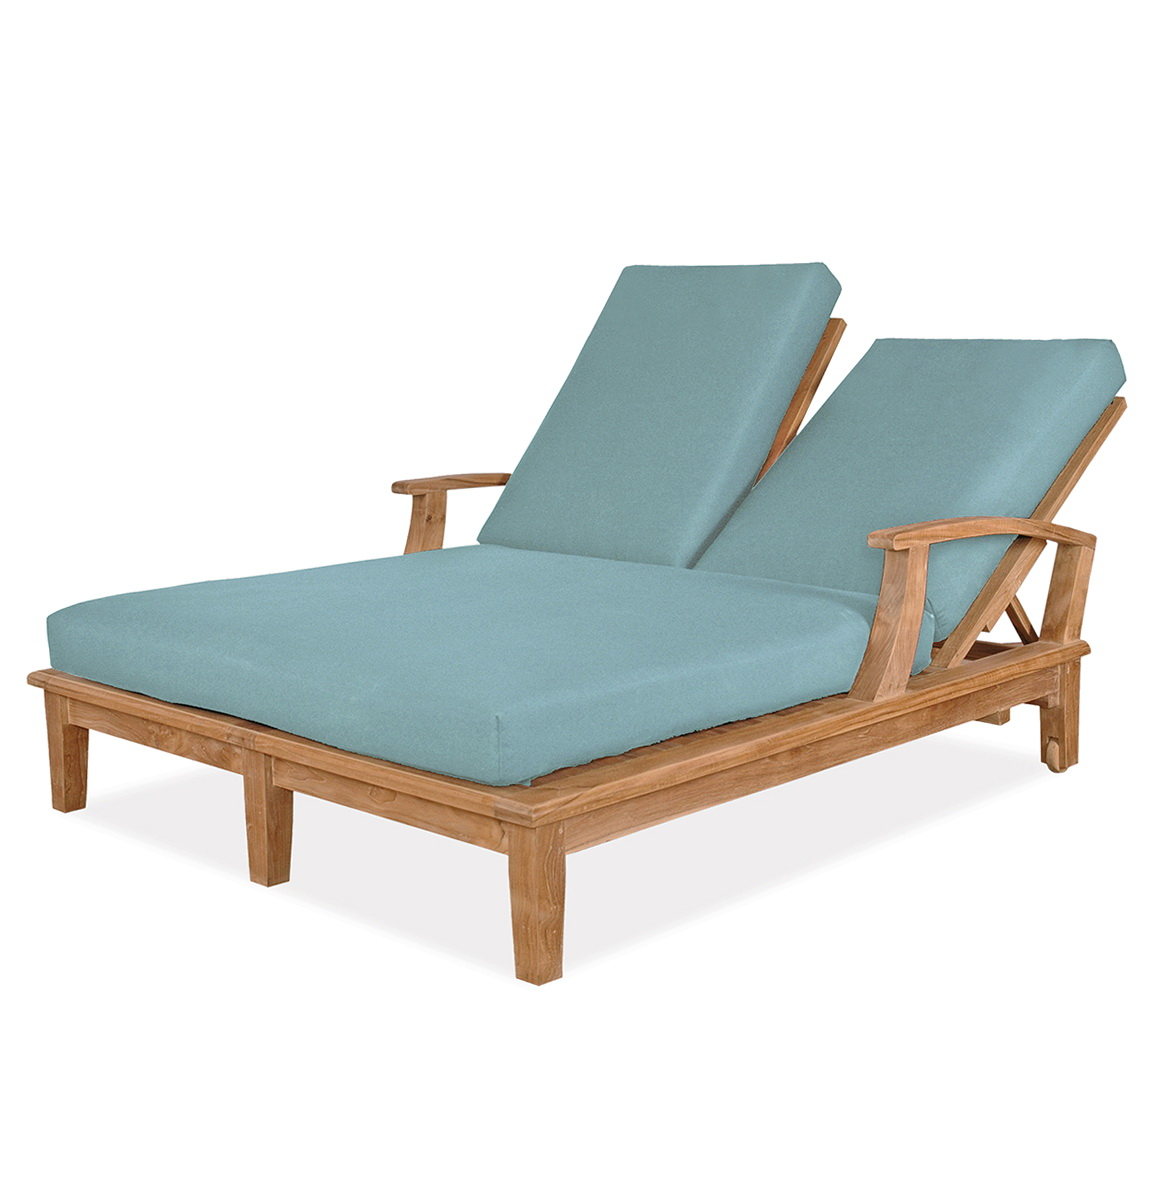 Replacement Outdoor Cushions Sunbrella